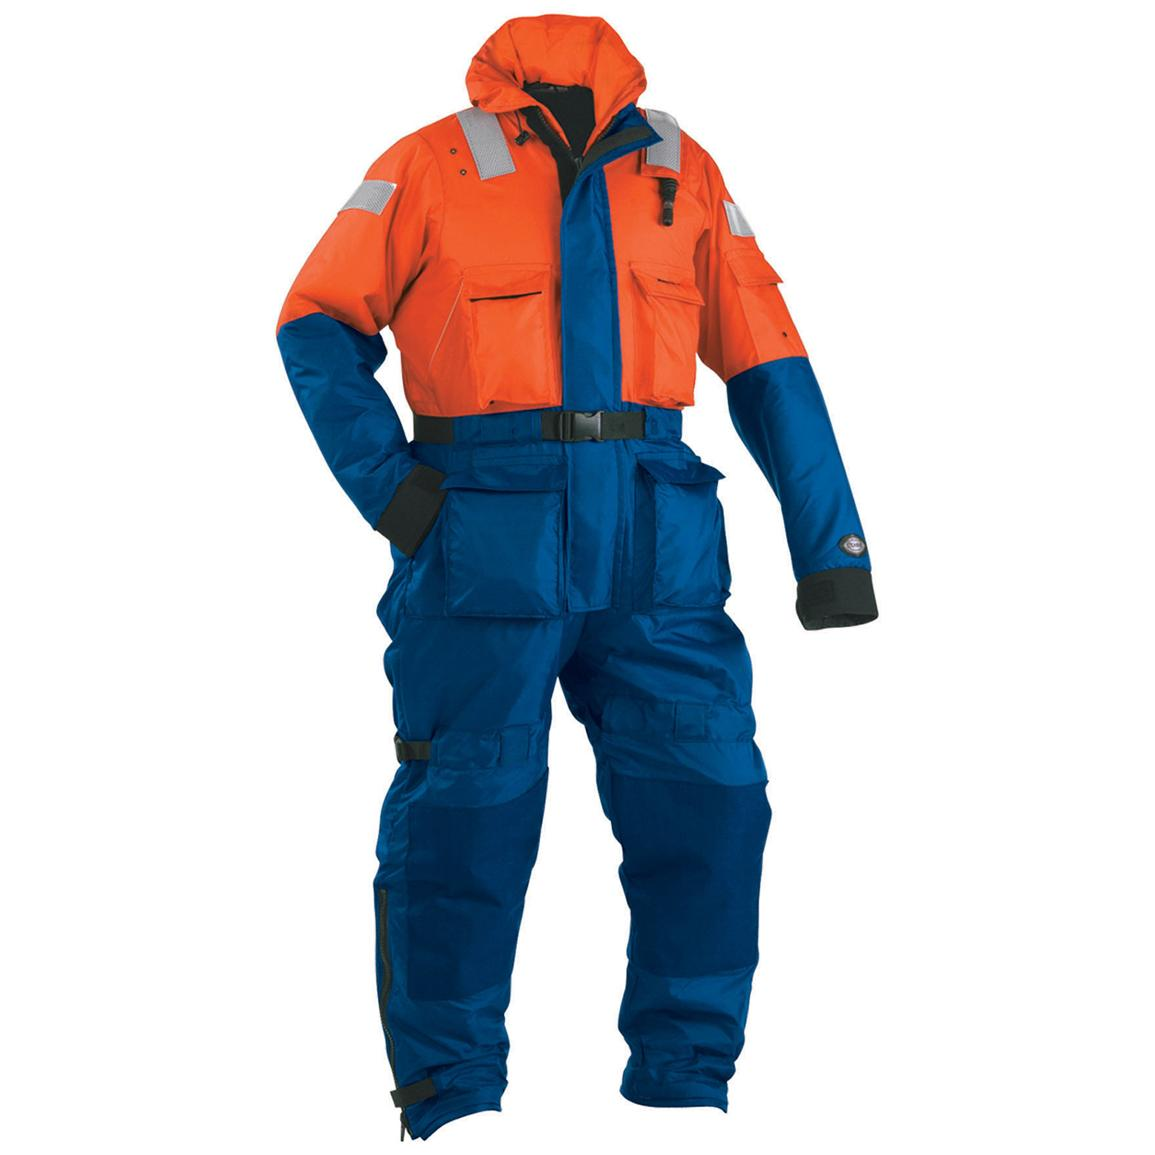 Stearns The Challenger Anti-Exposure Work Suit, Orange / Navy